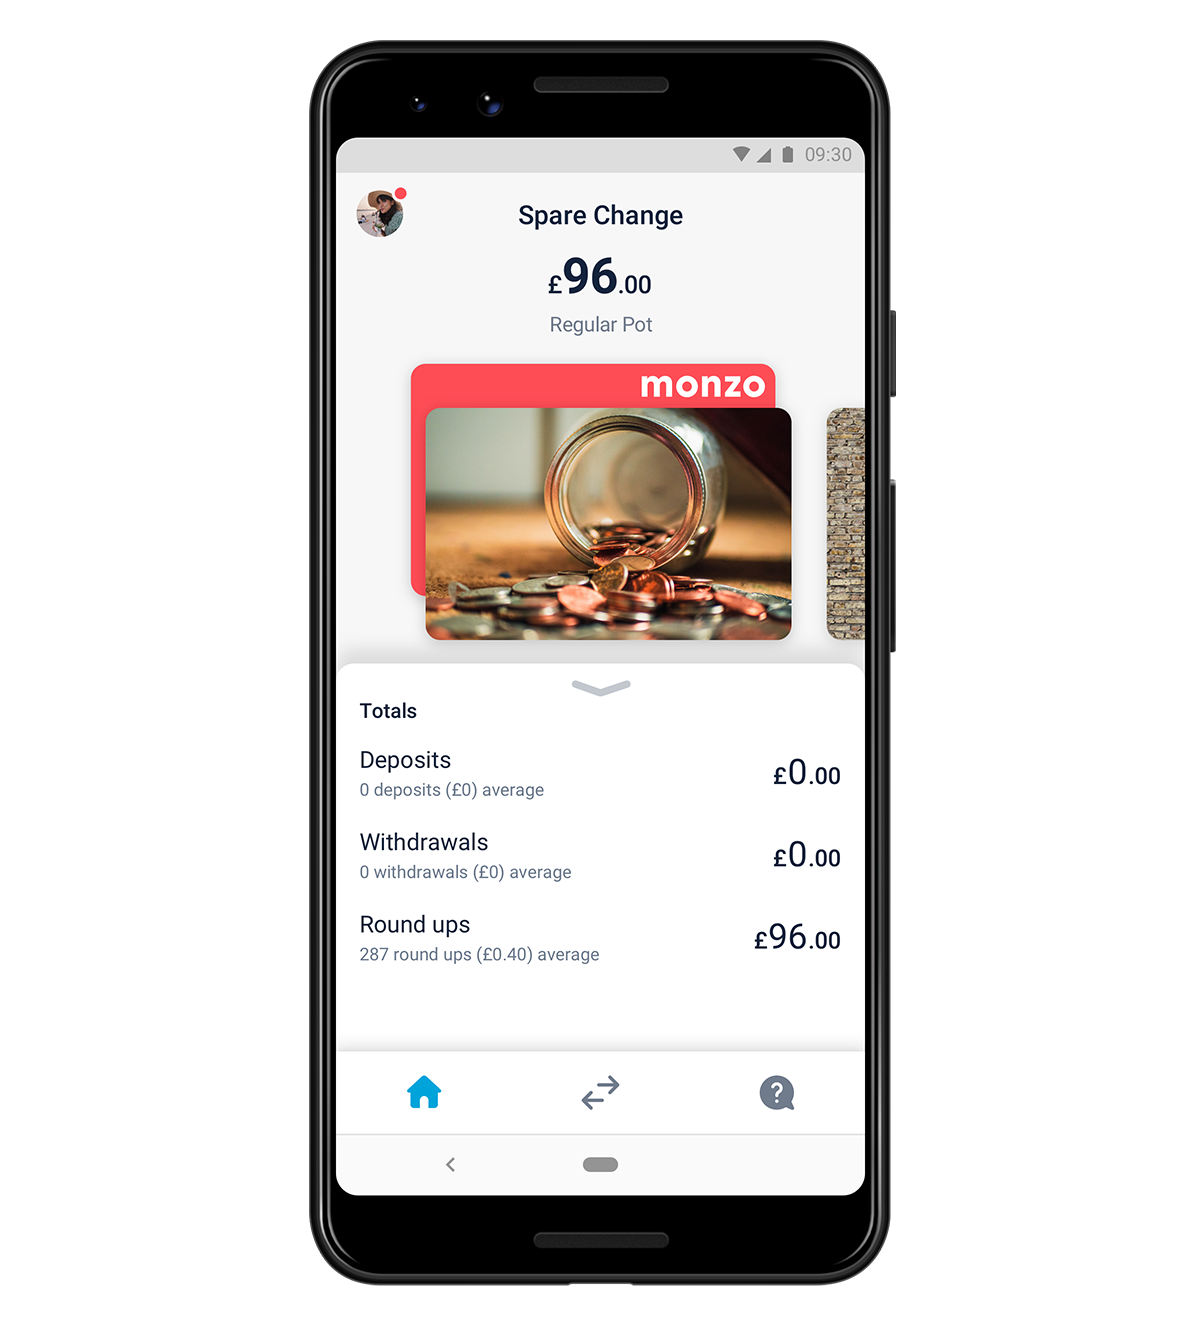 Screen in the Monzo app showing roundups